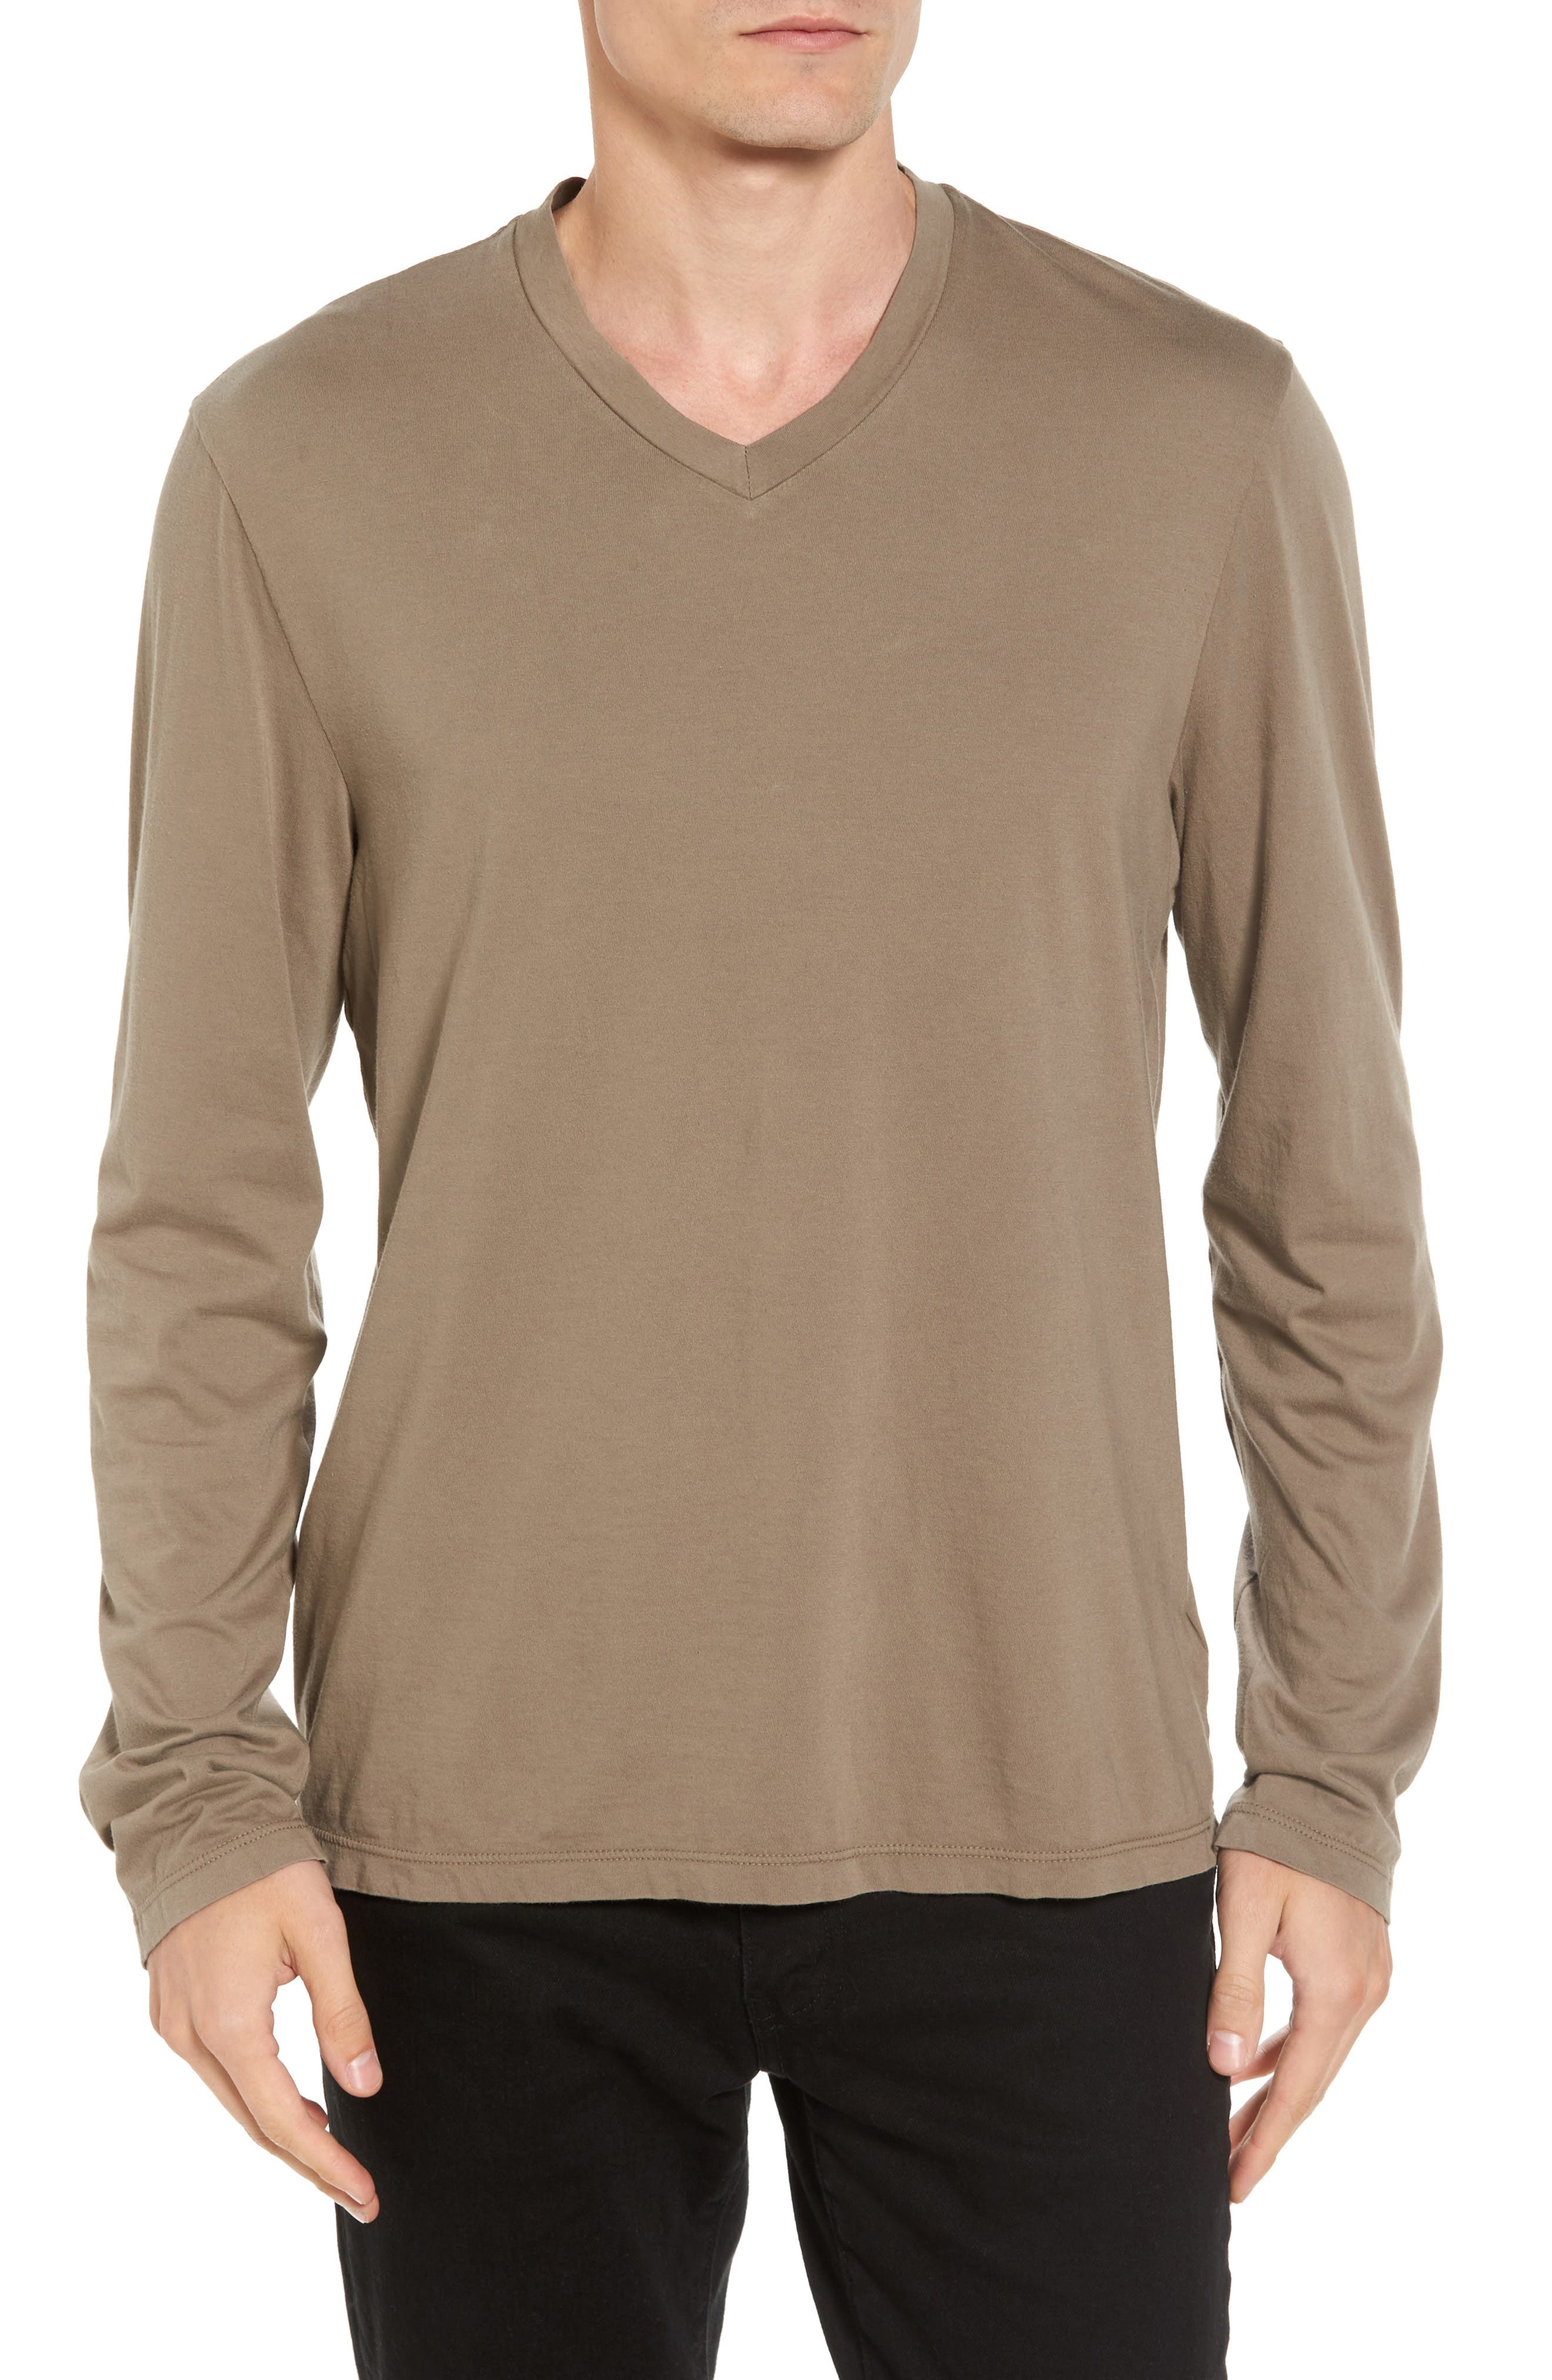 Alternate Image 1 Selected - James Perse Suvin V-Neck Sweatshirt